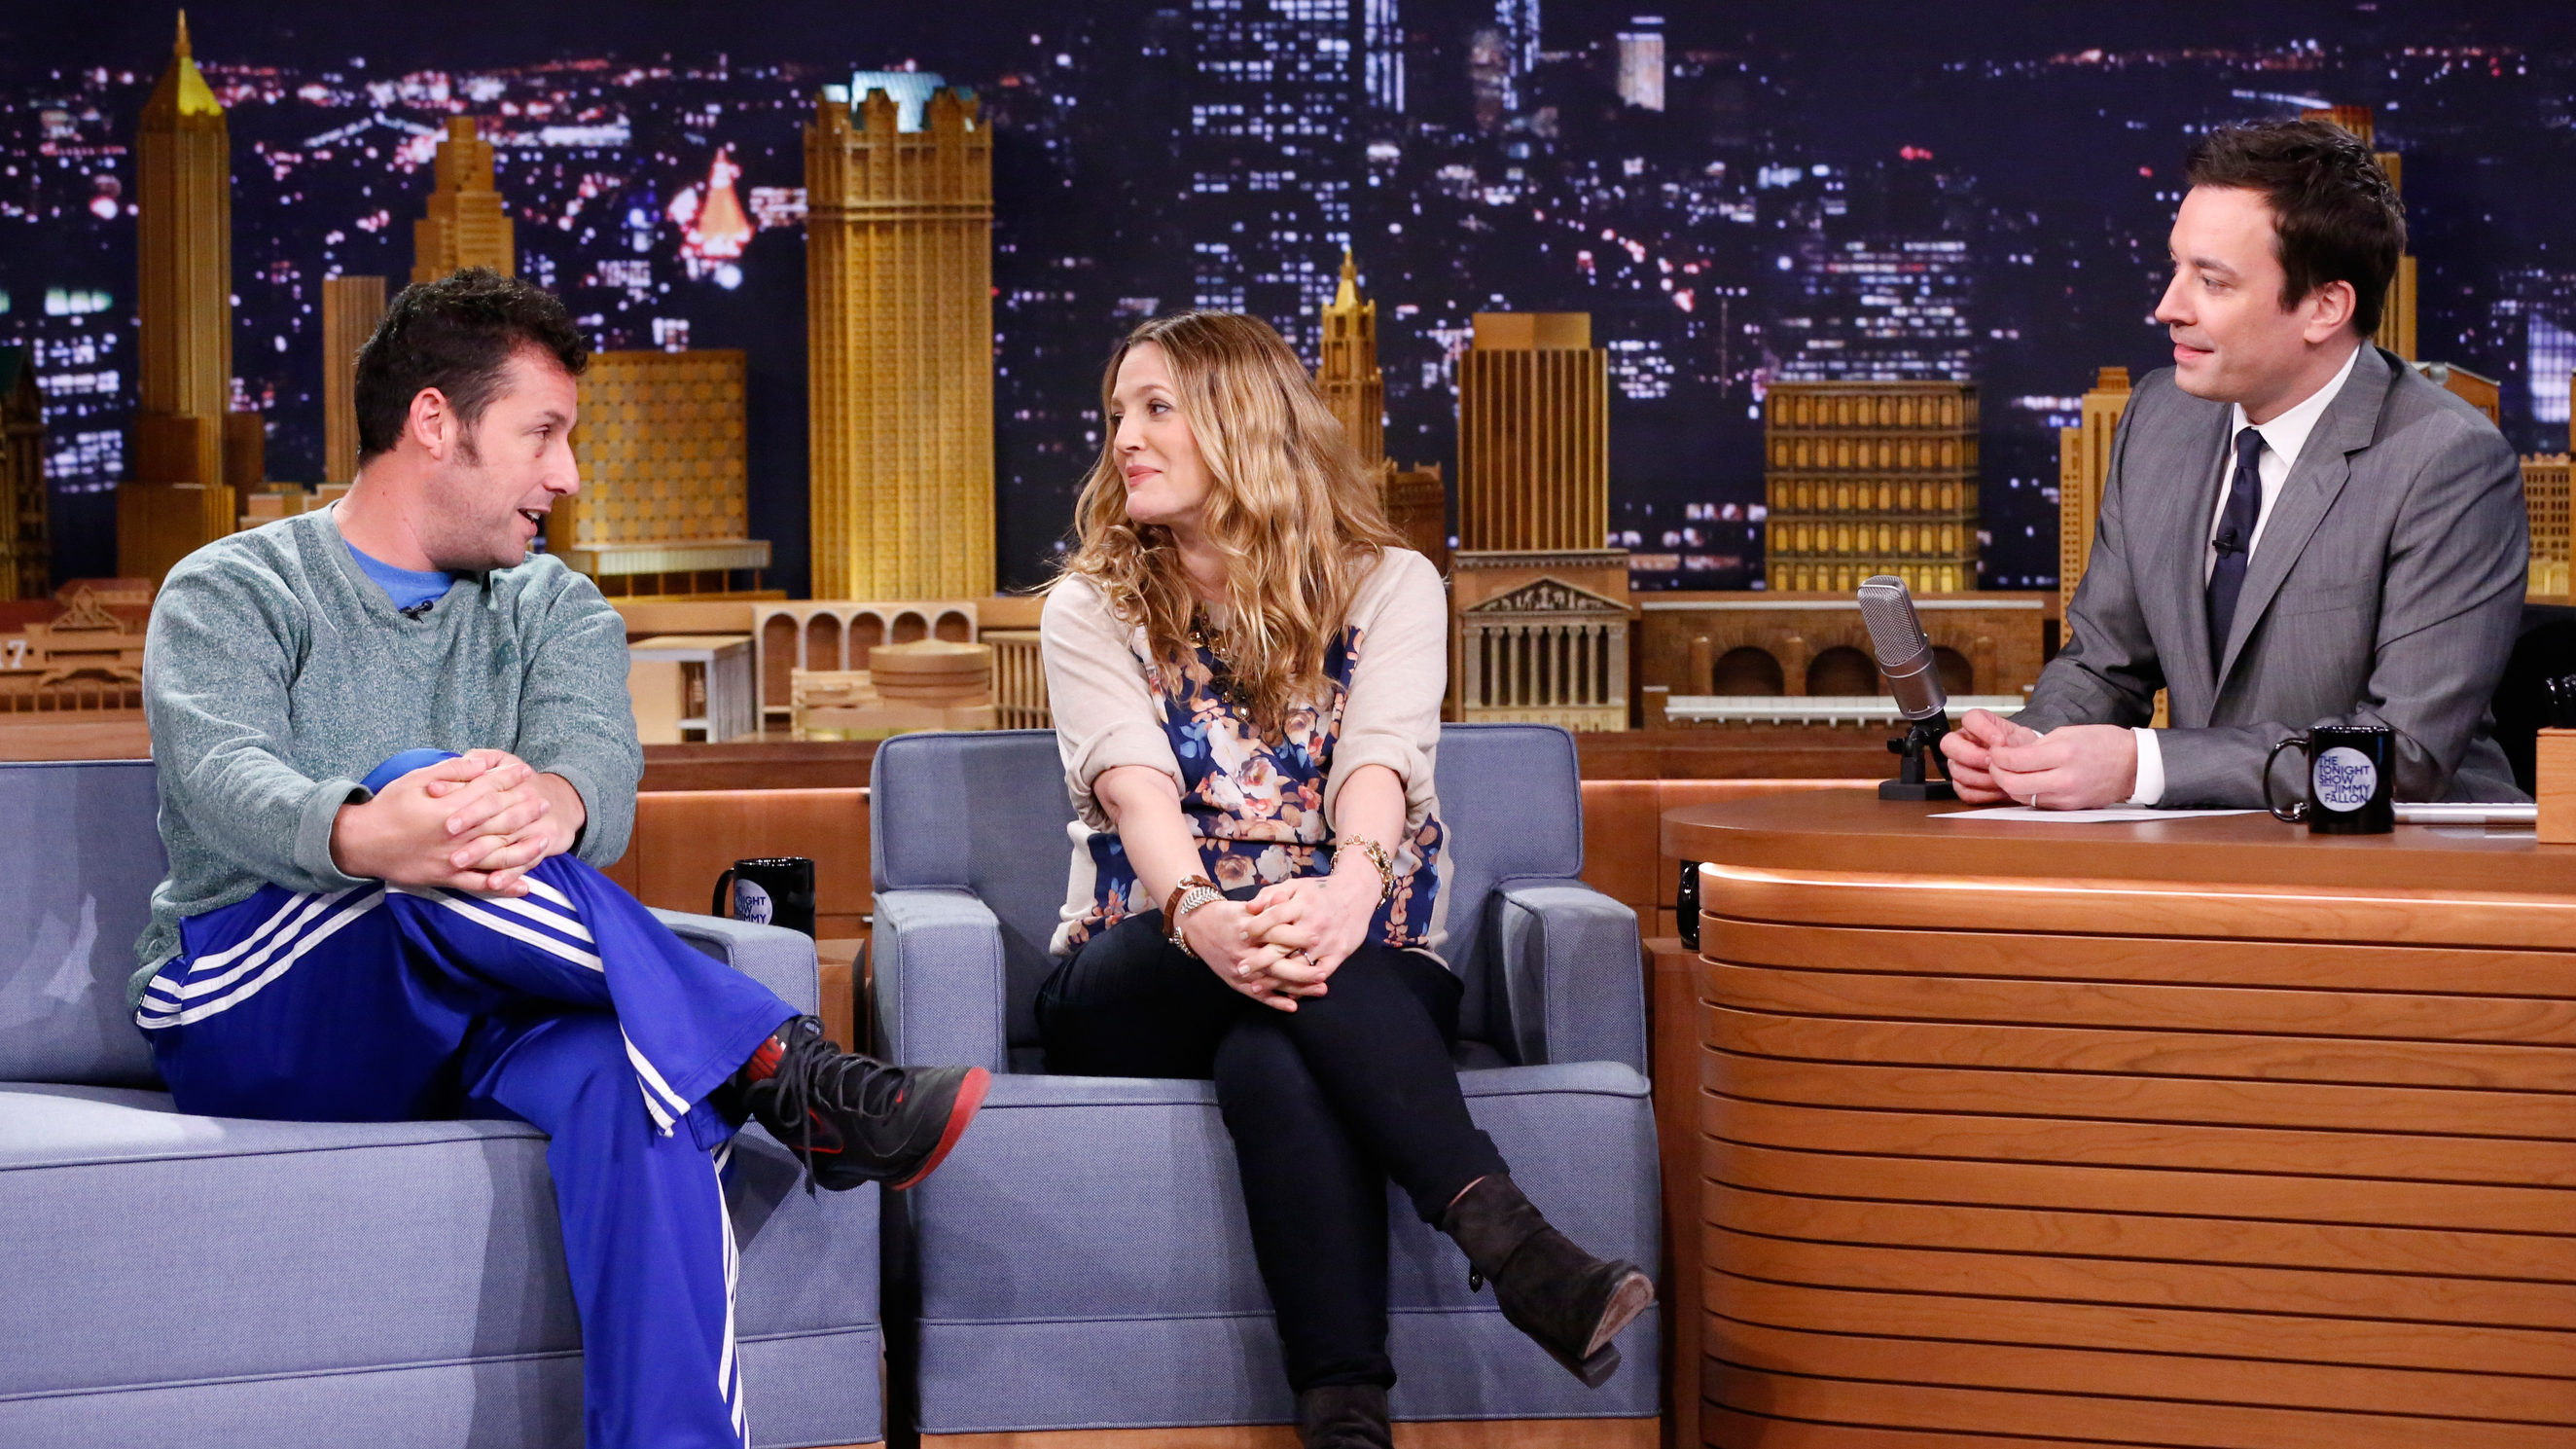 Adam Sandler and Drew Barrymore Cope with Jet Lag ...